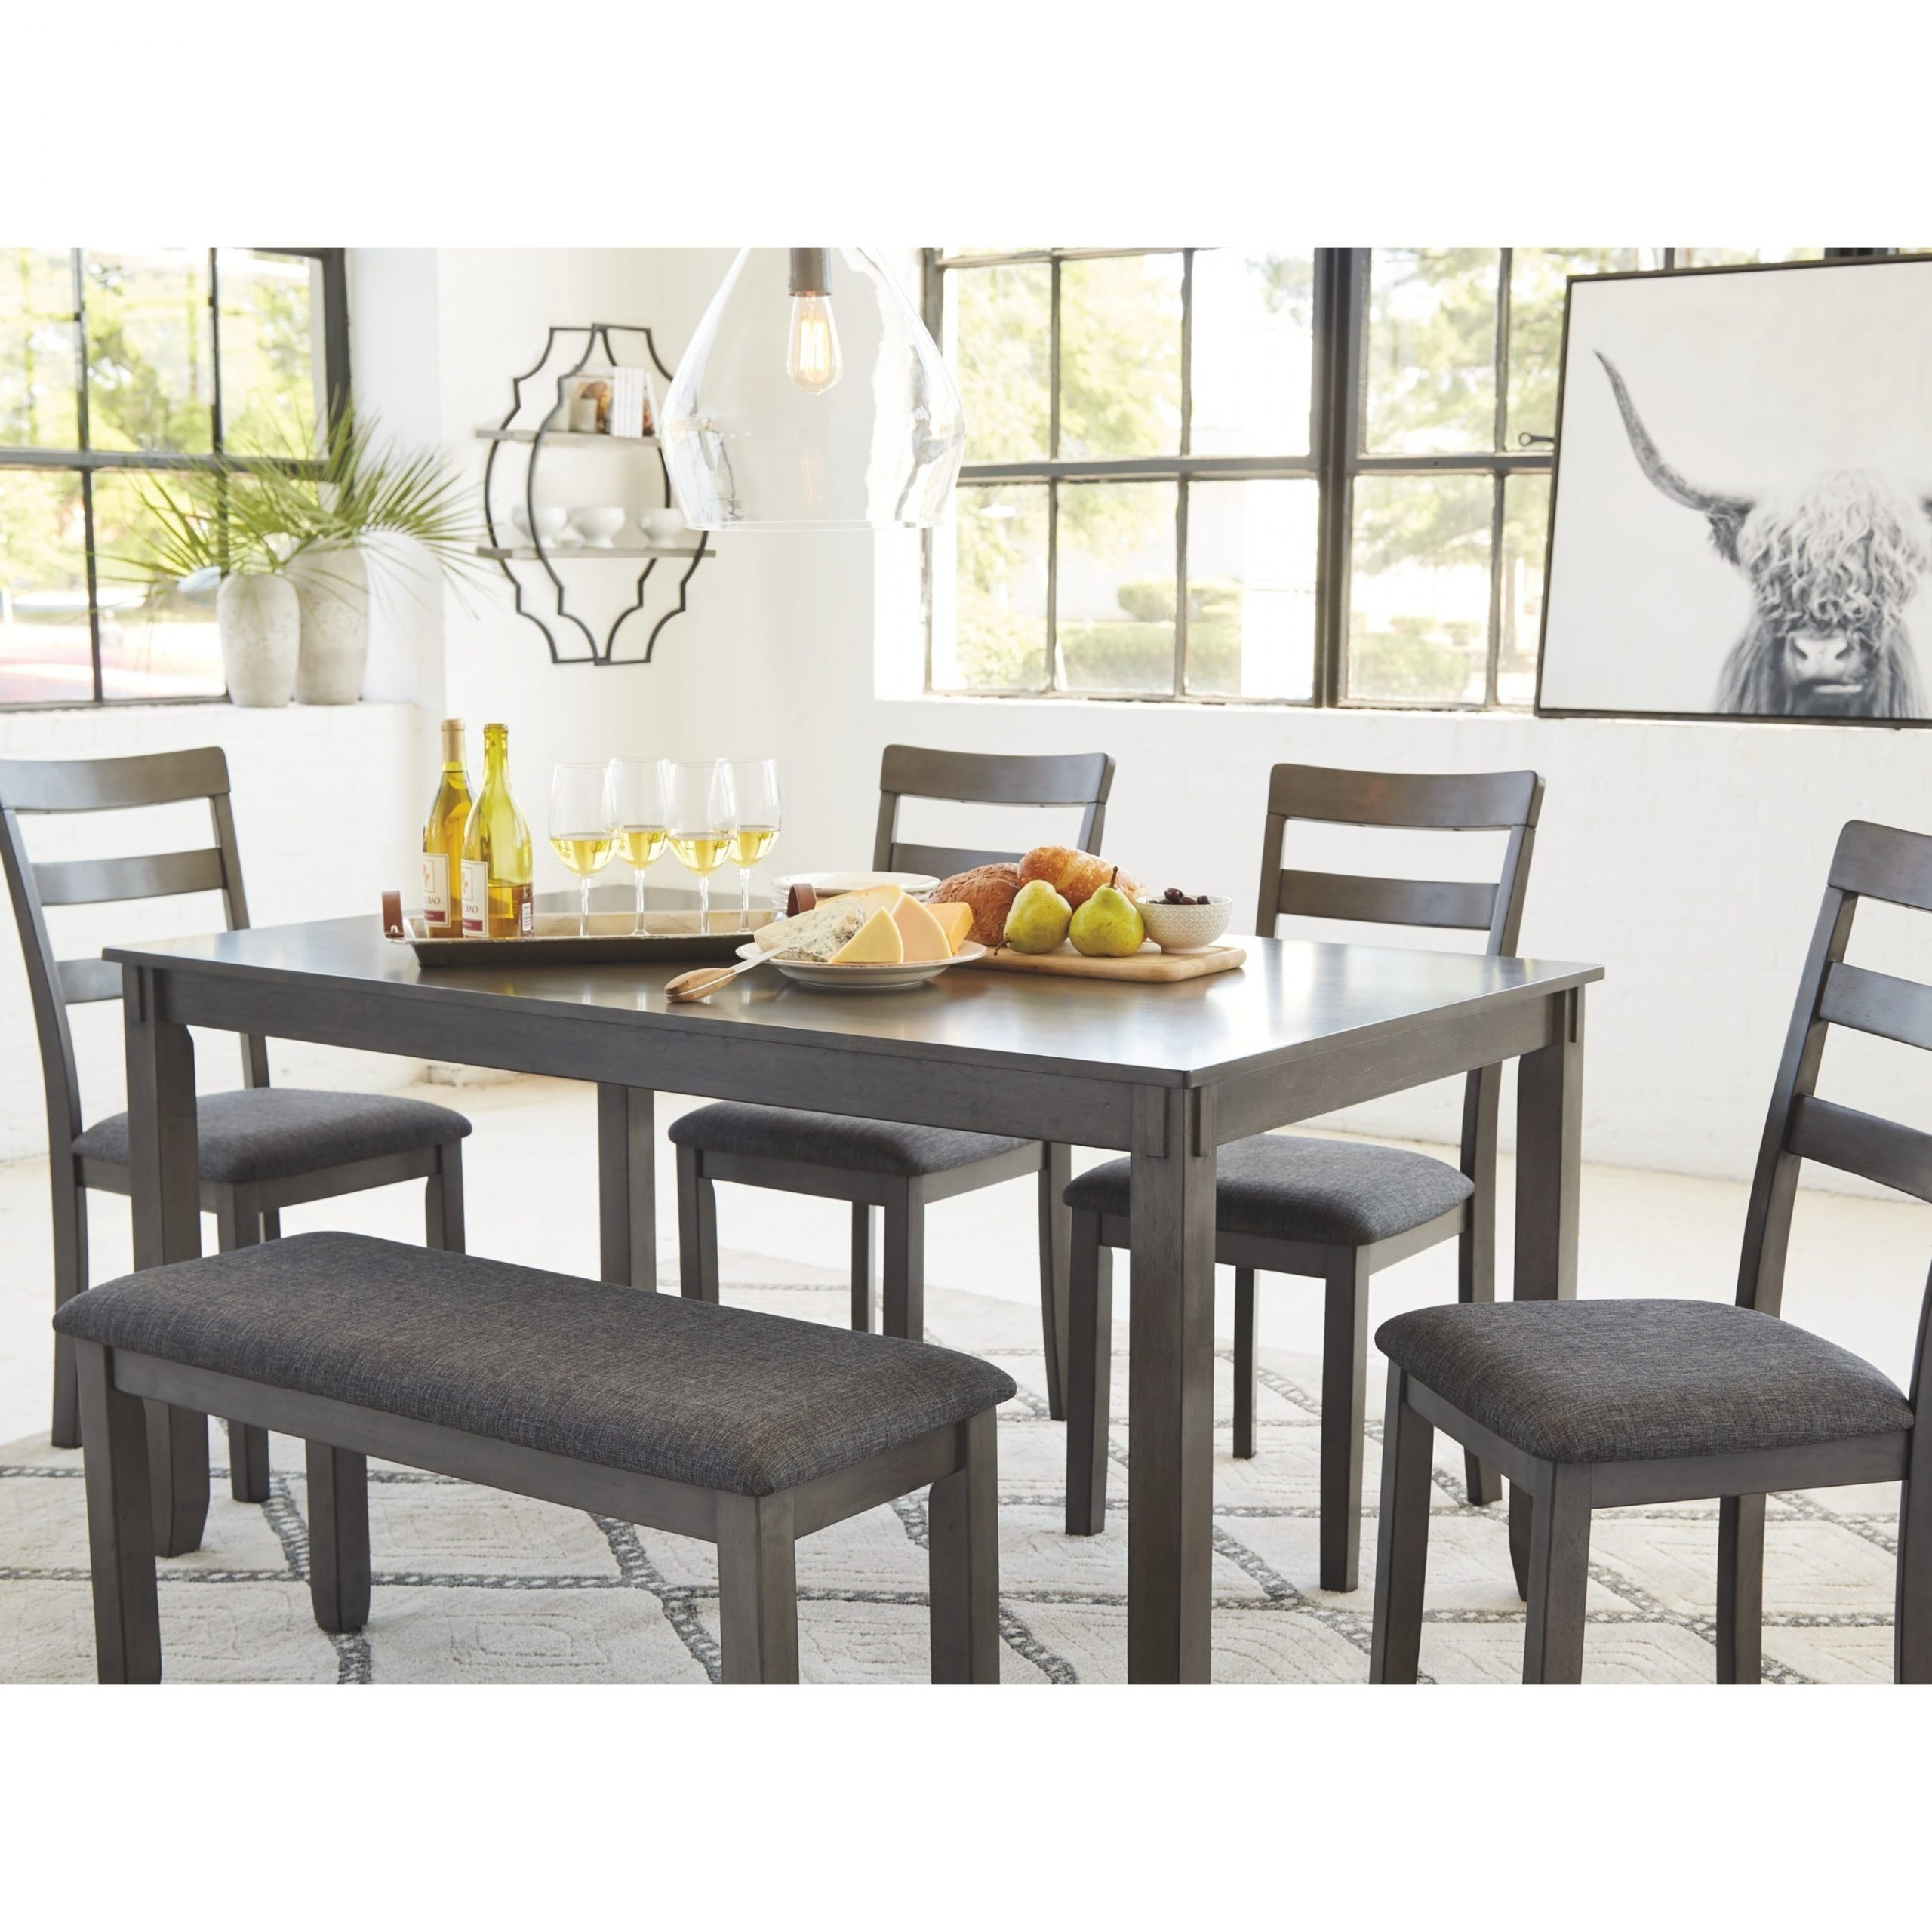 Newest Bridson Rectangular Dining Room Table Set Of 6 – Gray Regarding Charcoal Transitional 6 Seating Rectangular Dining Tables (View 22 of 30)